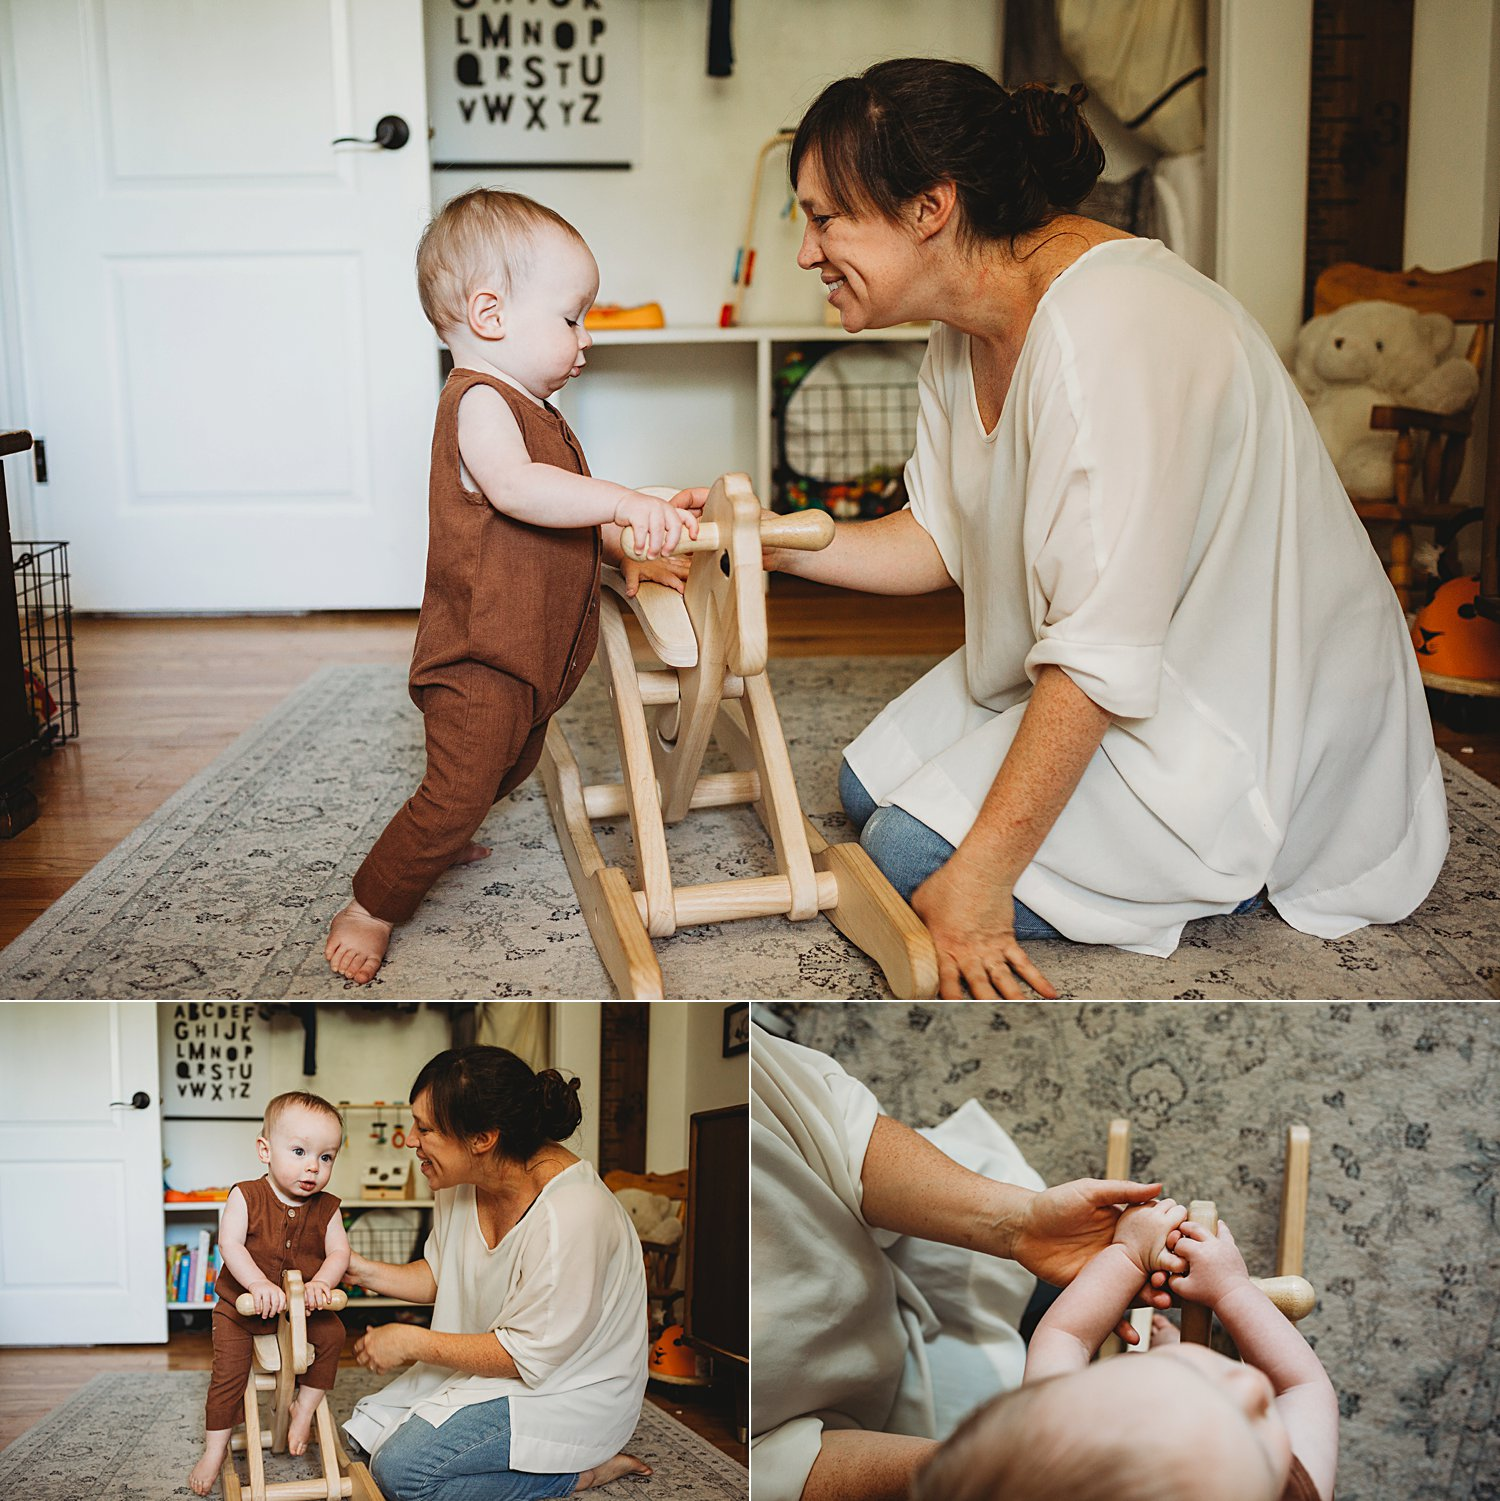 Mom plays with baby boy on rocking horse